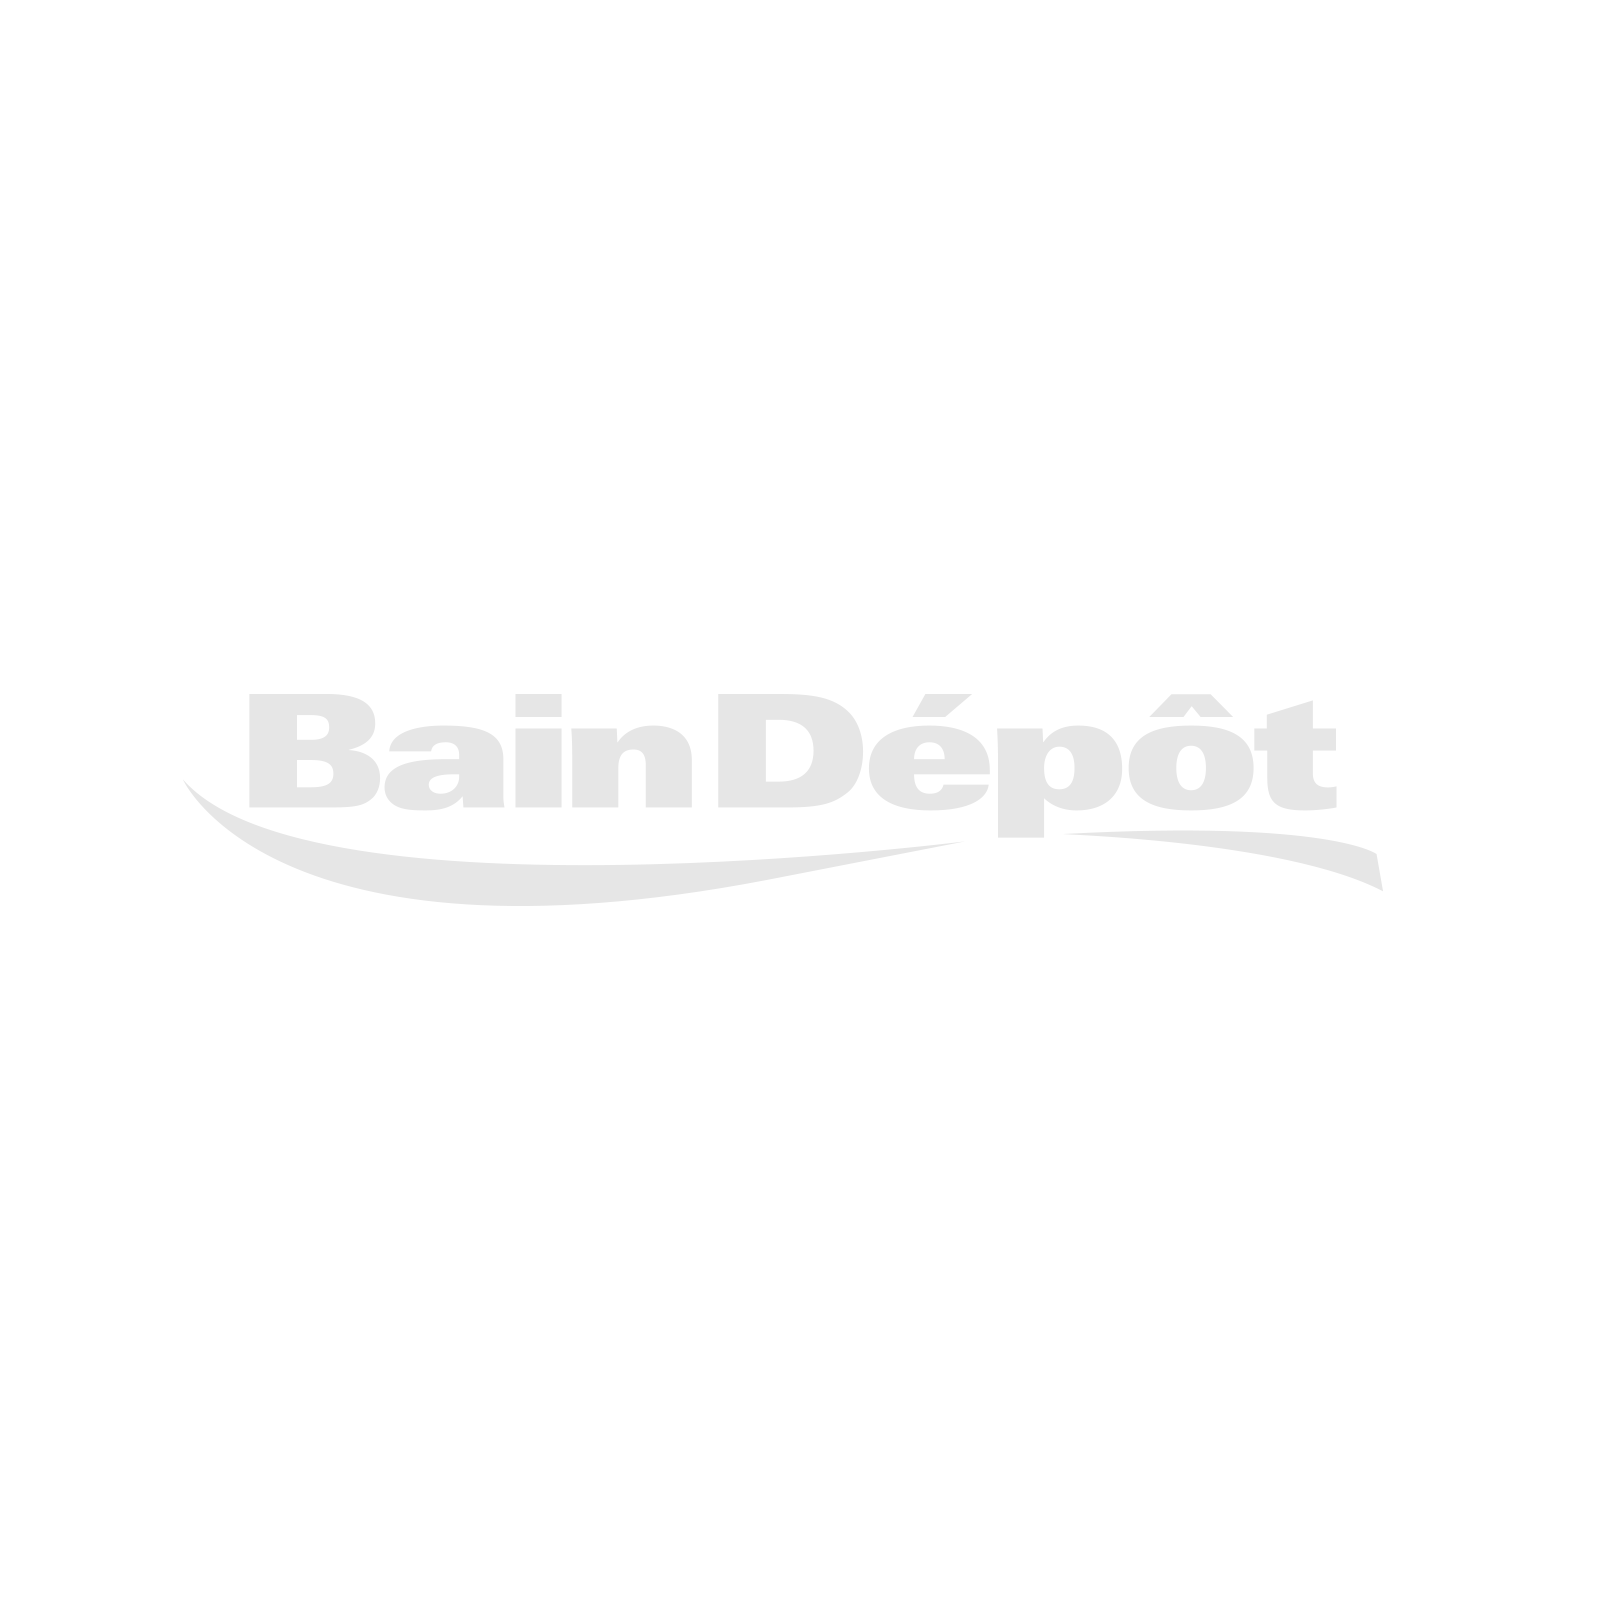 Chrome 2-piece round roman bathtub faucet